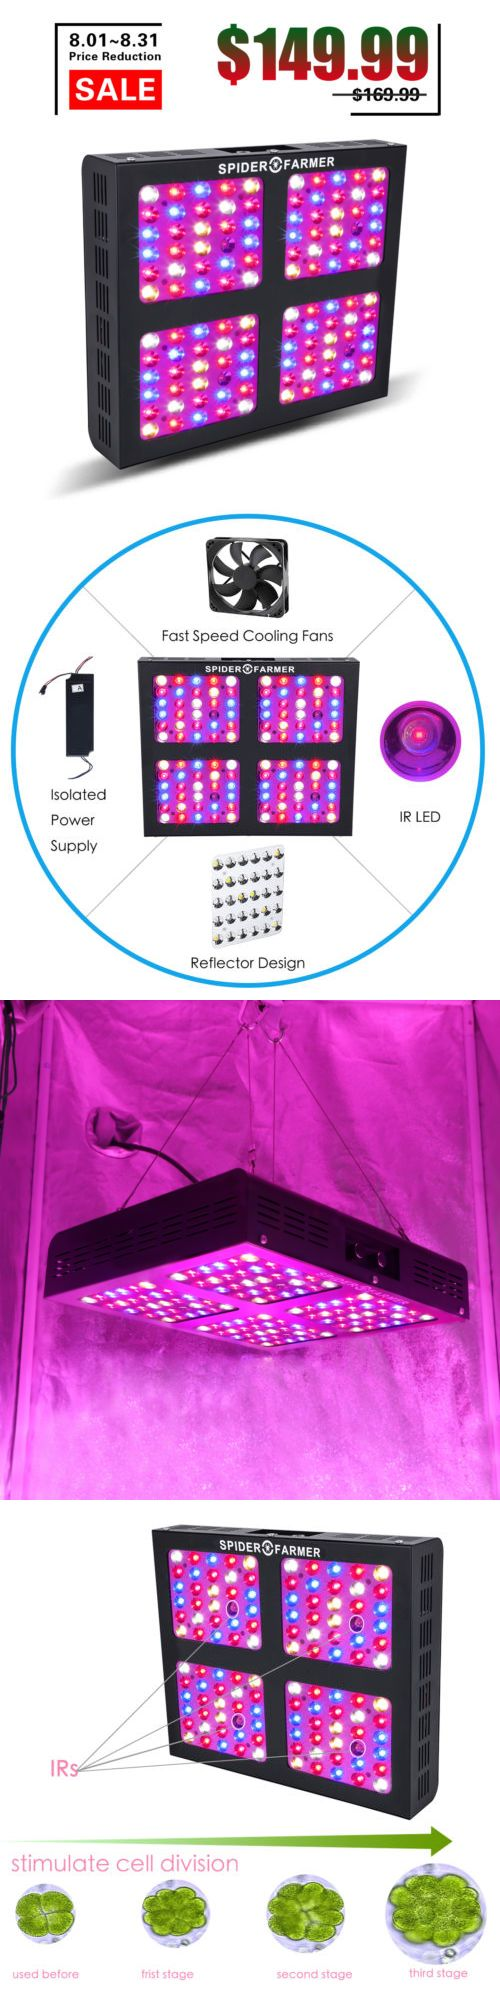 Grow Light Ballasts 179016 Spider Farmer 600w Led Grow Light Dimmable Hydroponic Full Specturm Indoor Plant Buy It Now On Led Grow Lights Grow Lights Light